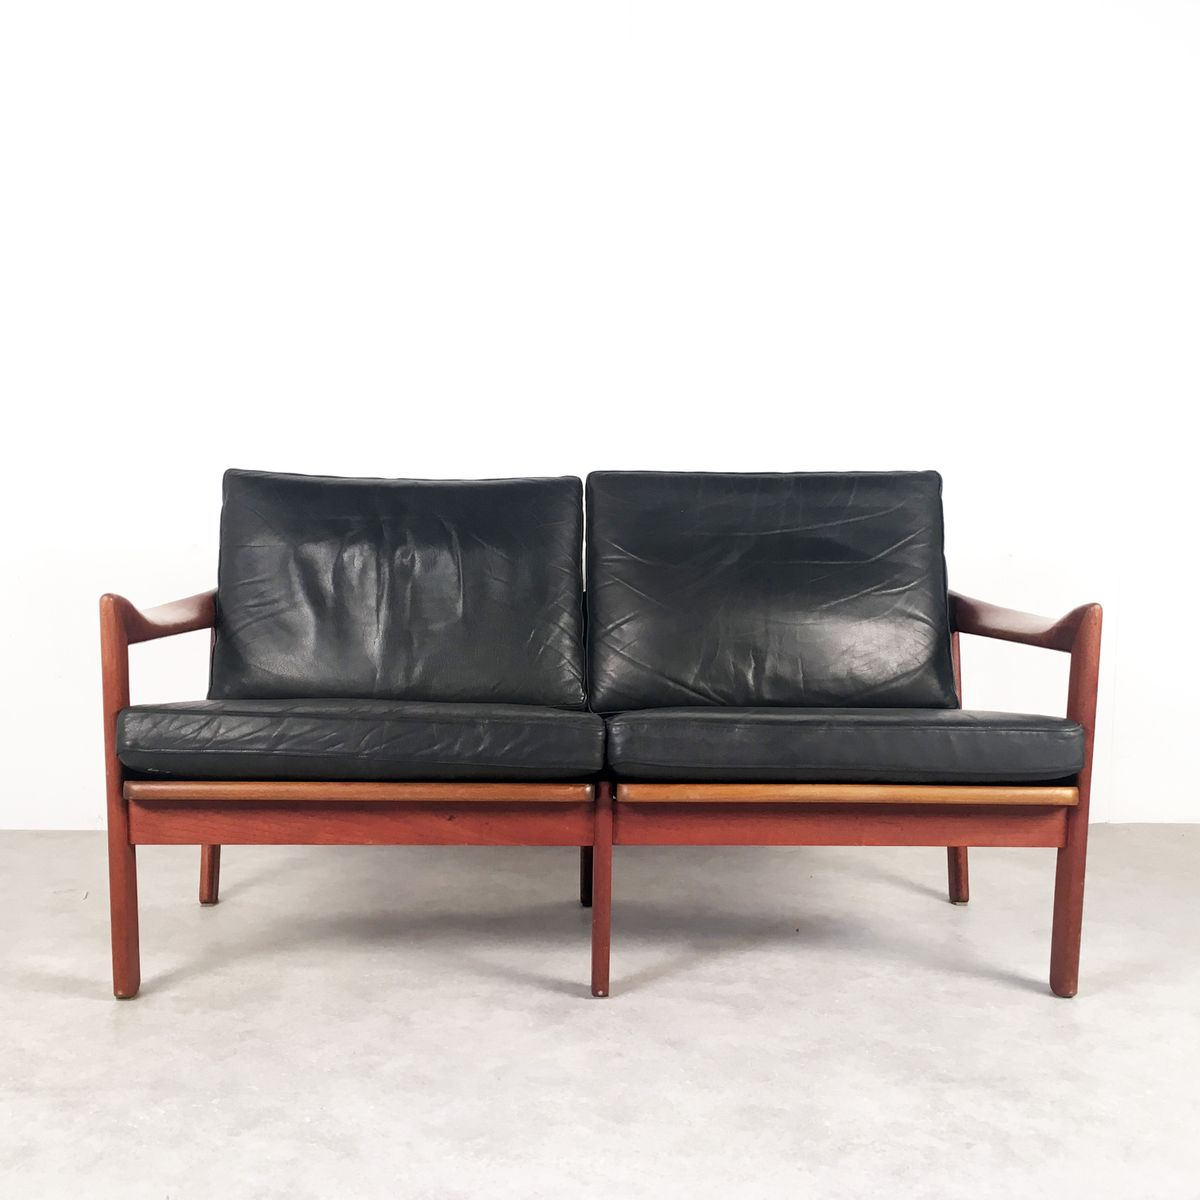 Mid Century Sofa By Illum Wikkels For Niels Eilersen For Sale At Pamono